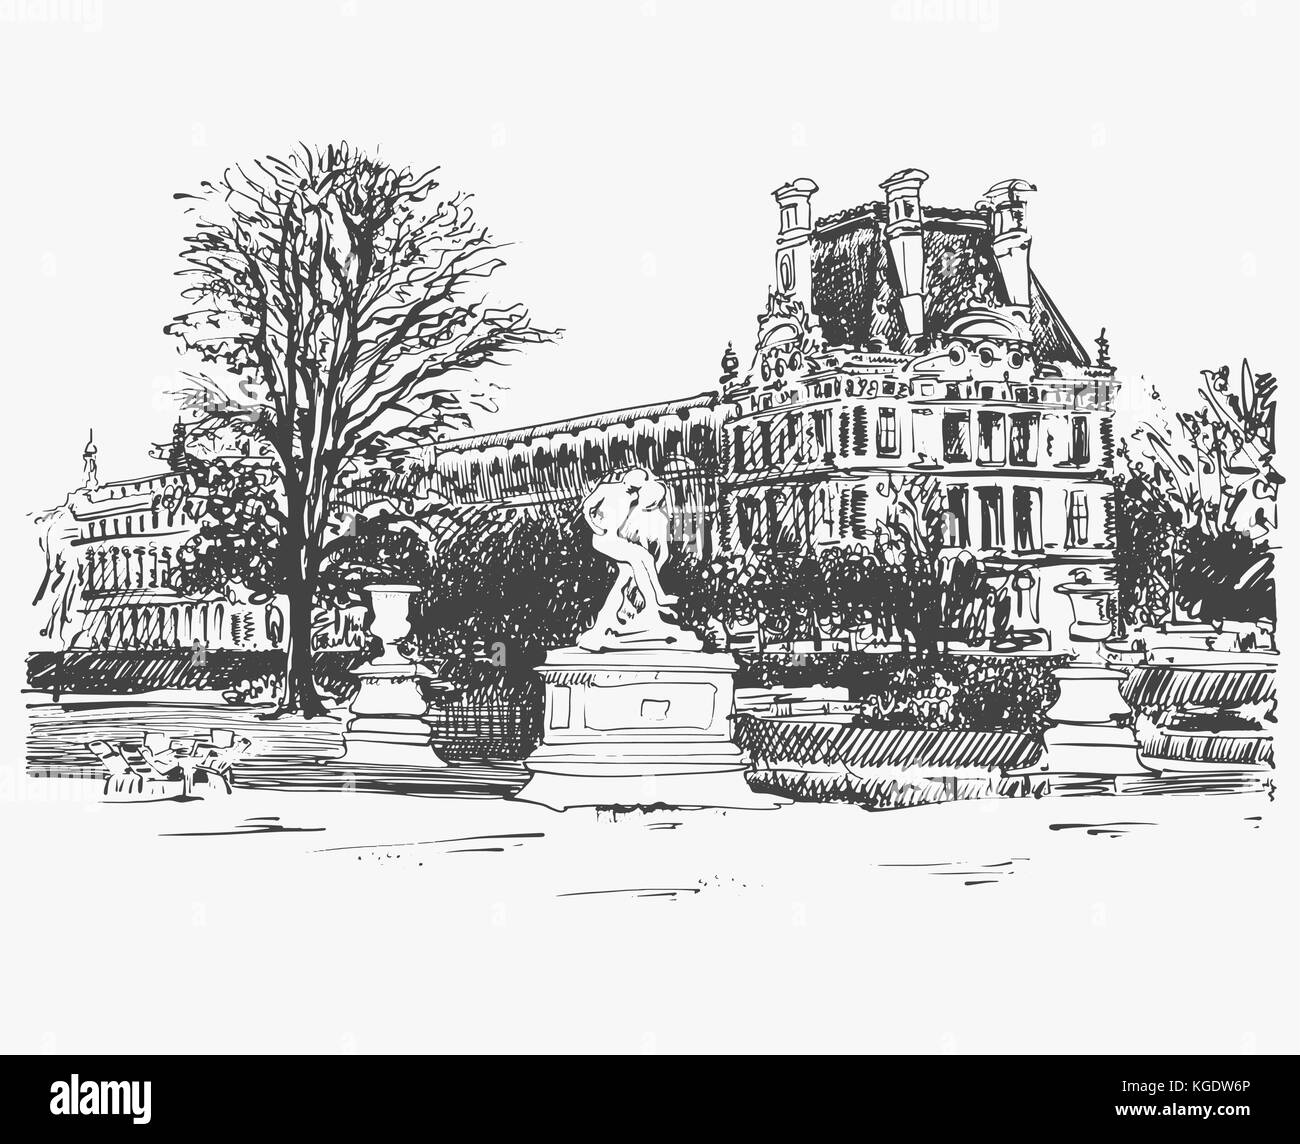 sketch drawing of the Louvre, famous place from Paris, France - Stock Vector